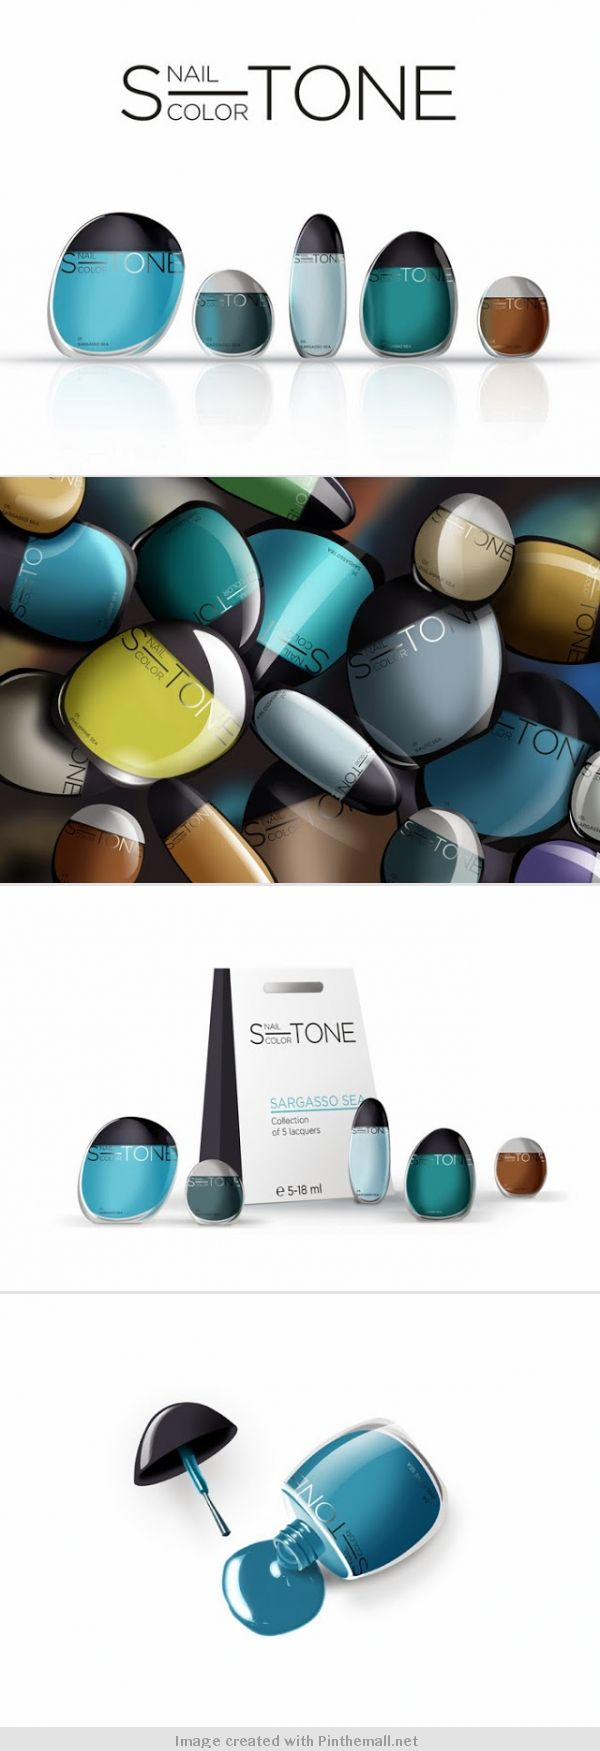 S Tone Concept On Packaging Of The World Creative Package Design Gallery Cosmetic Packaging Design Graphic Design Packaging Packaging Design Inspiration